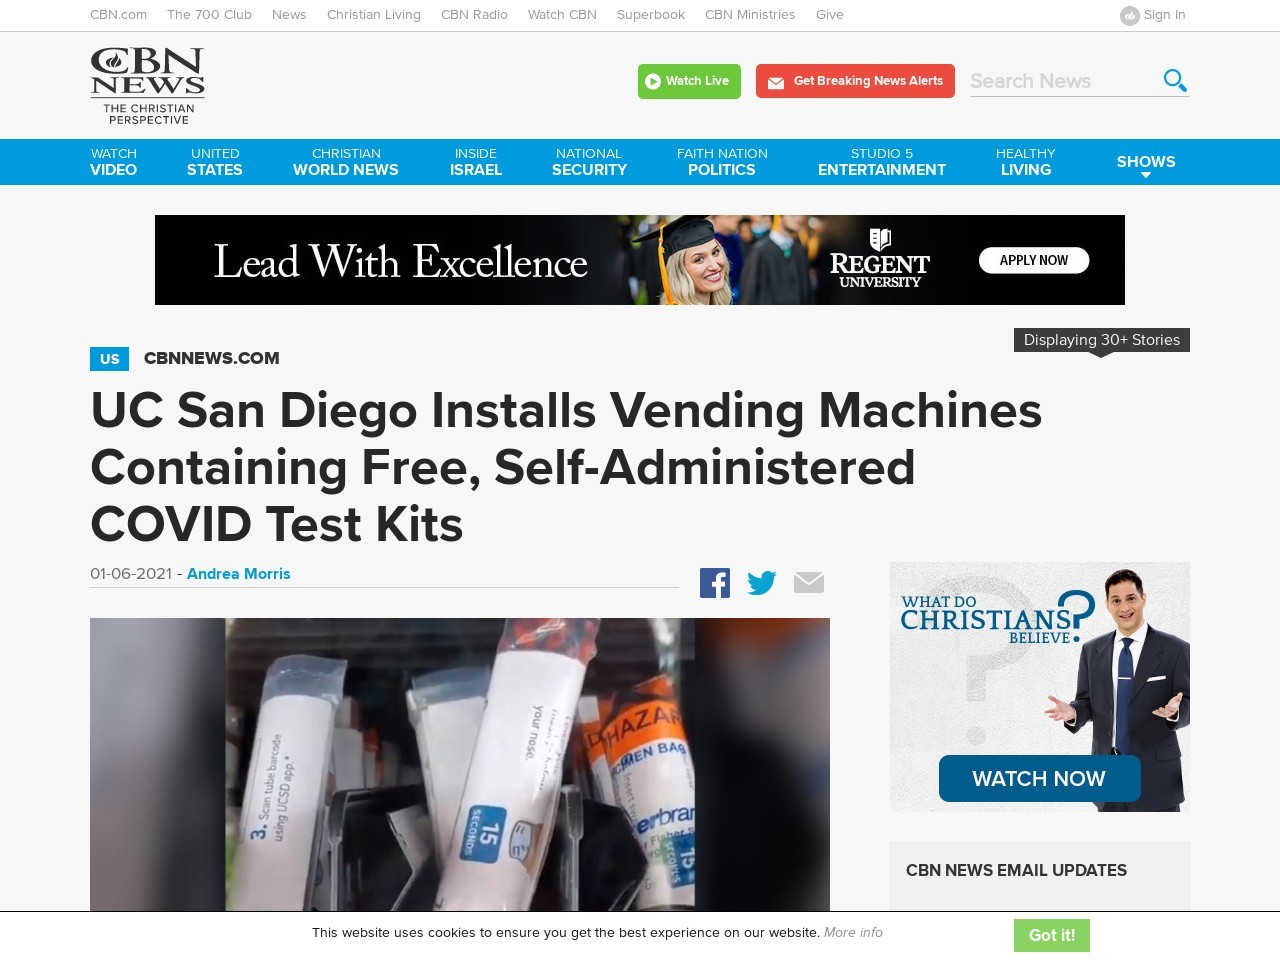 UC San Diego Installs Vending Machines Containing Free, Self-Administered COVID Test Kits